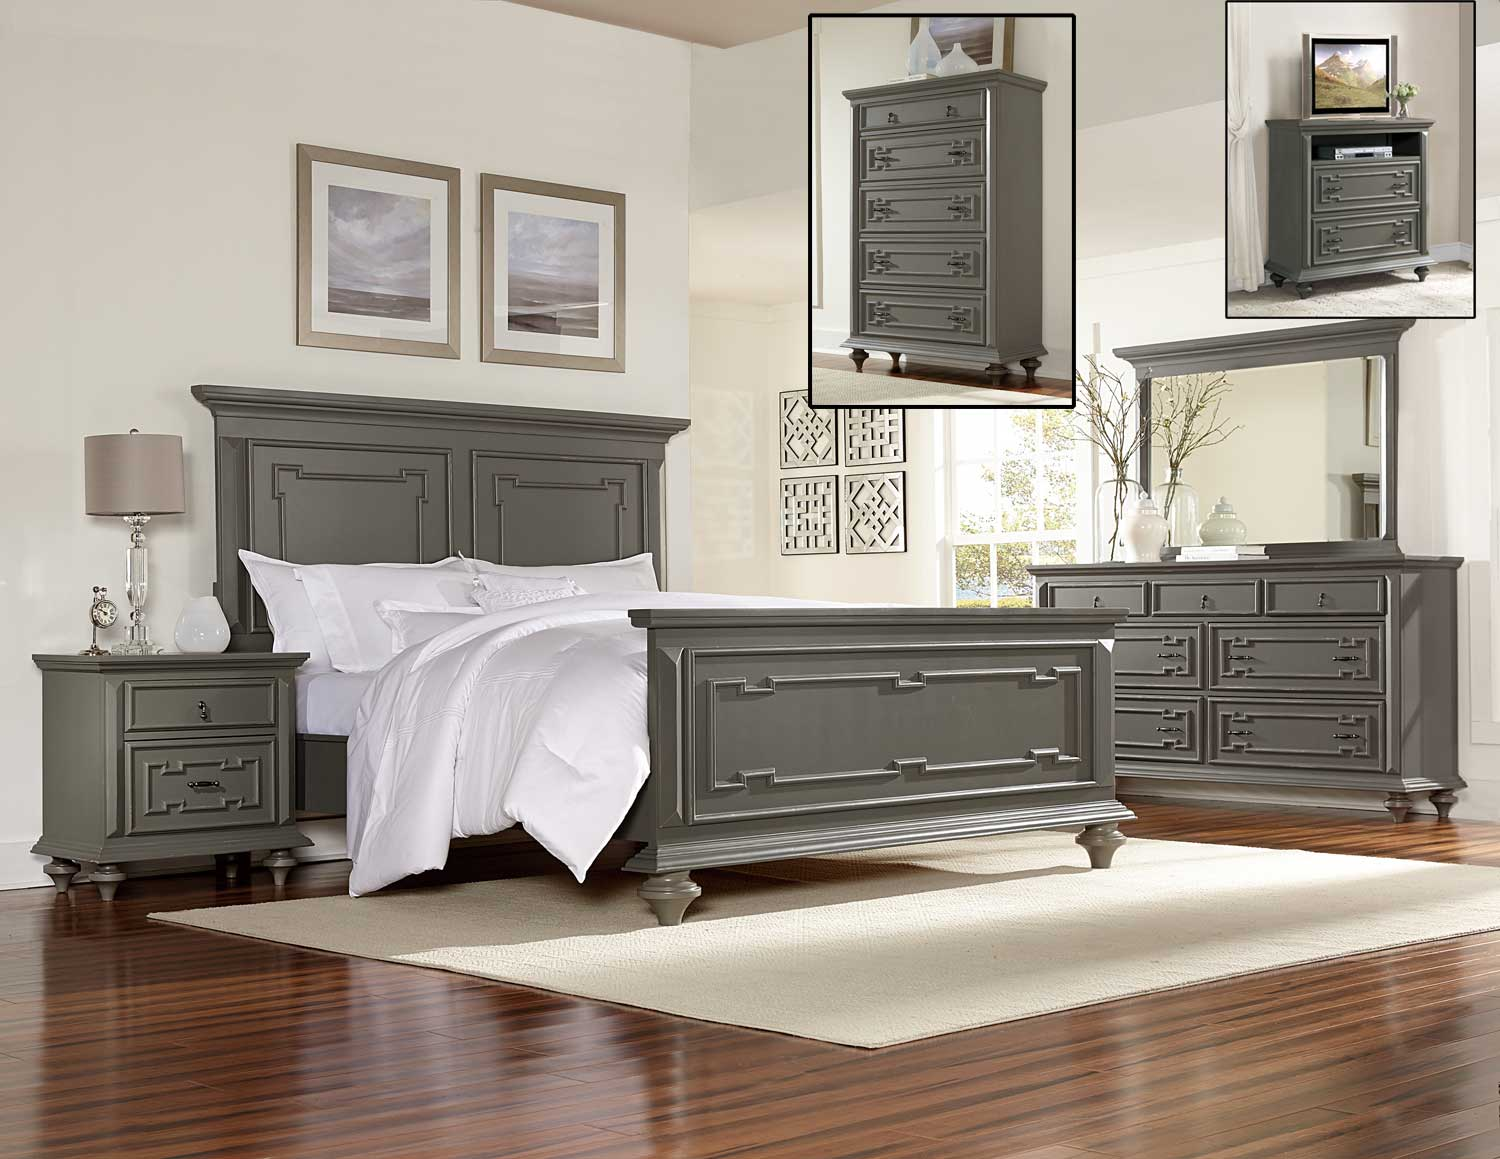 homelegance marceline bedroom set grey - Grey Bedroom Set